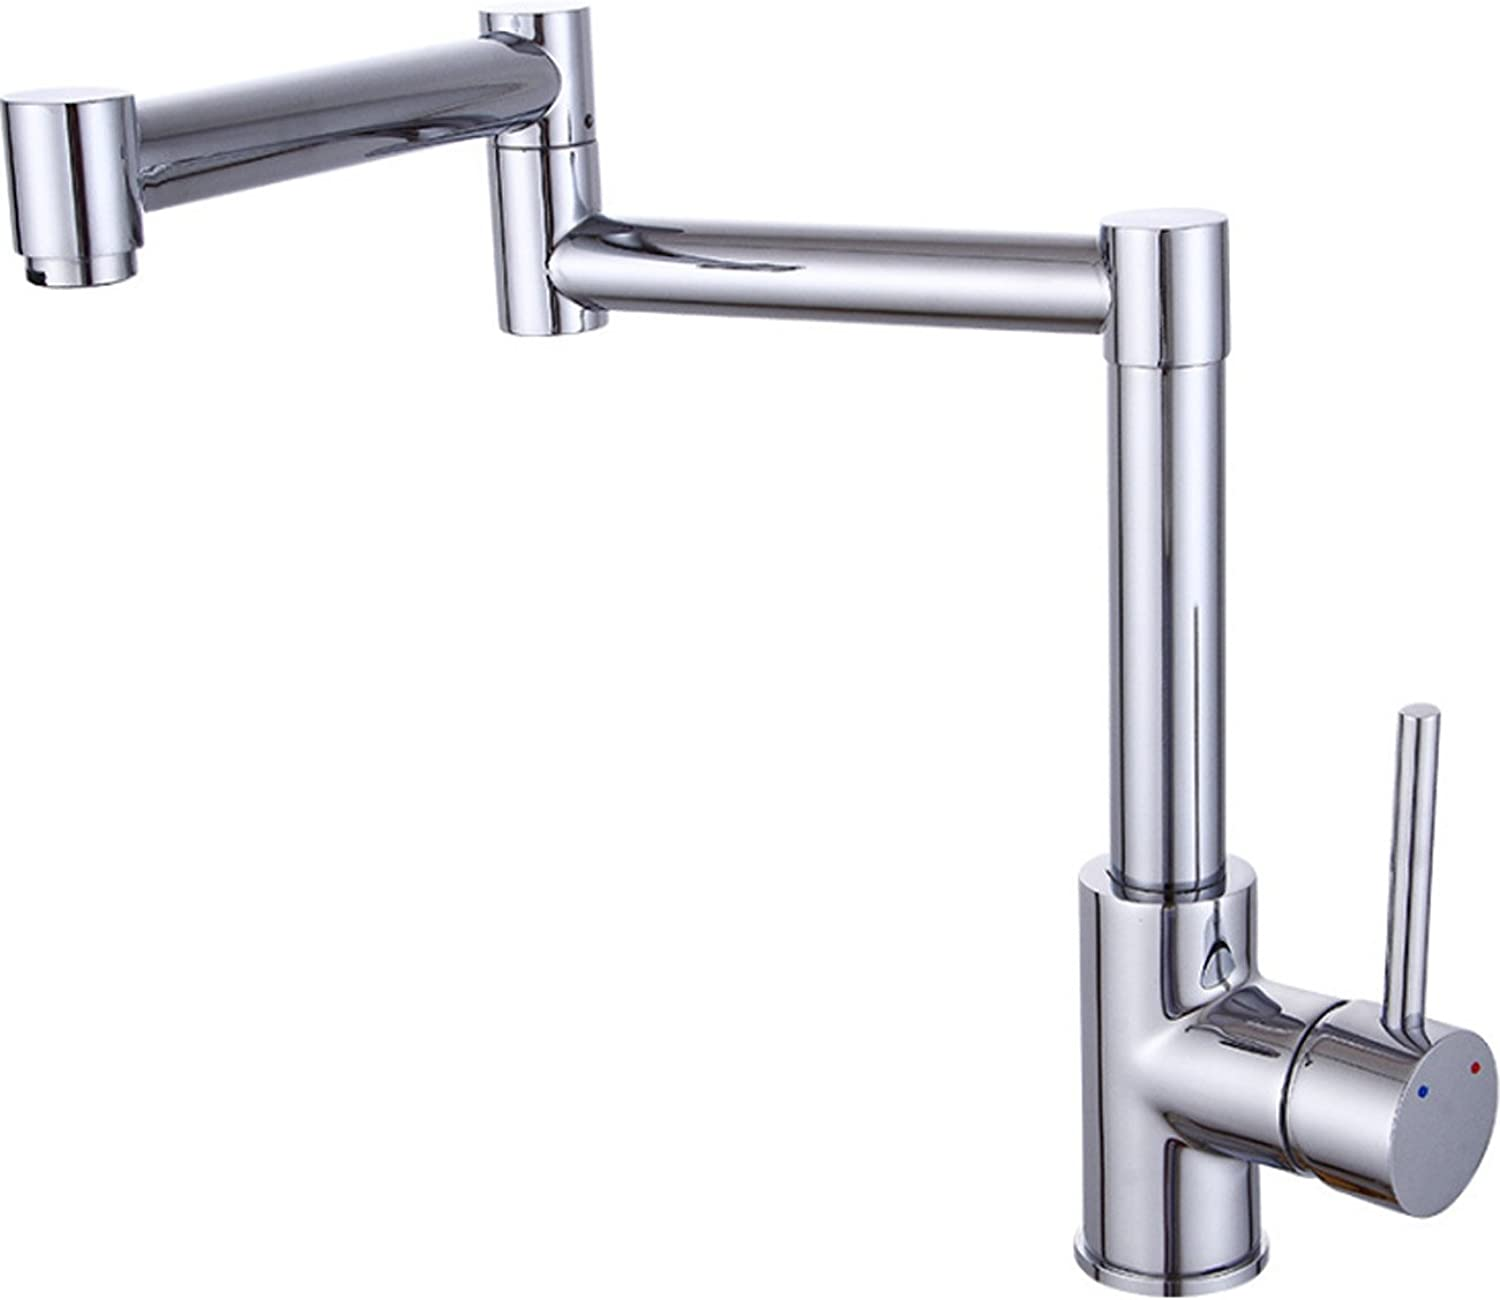 Swiveling Foldable Kitchen Sink Taps,One Hole Single Handle Copper Kitchen Faucet For Hot And Cold Water Kitchen Tap